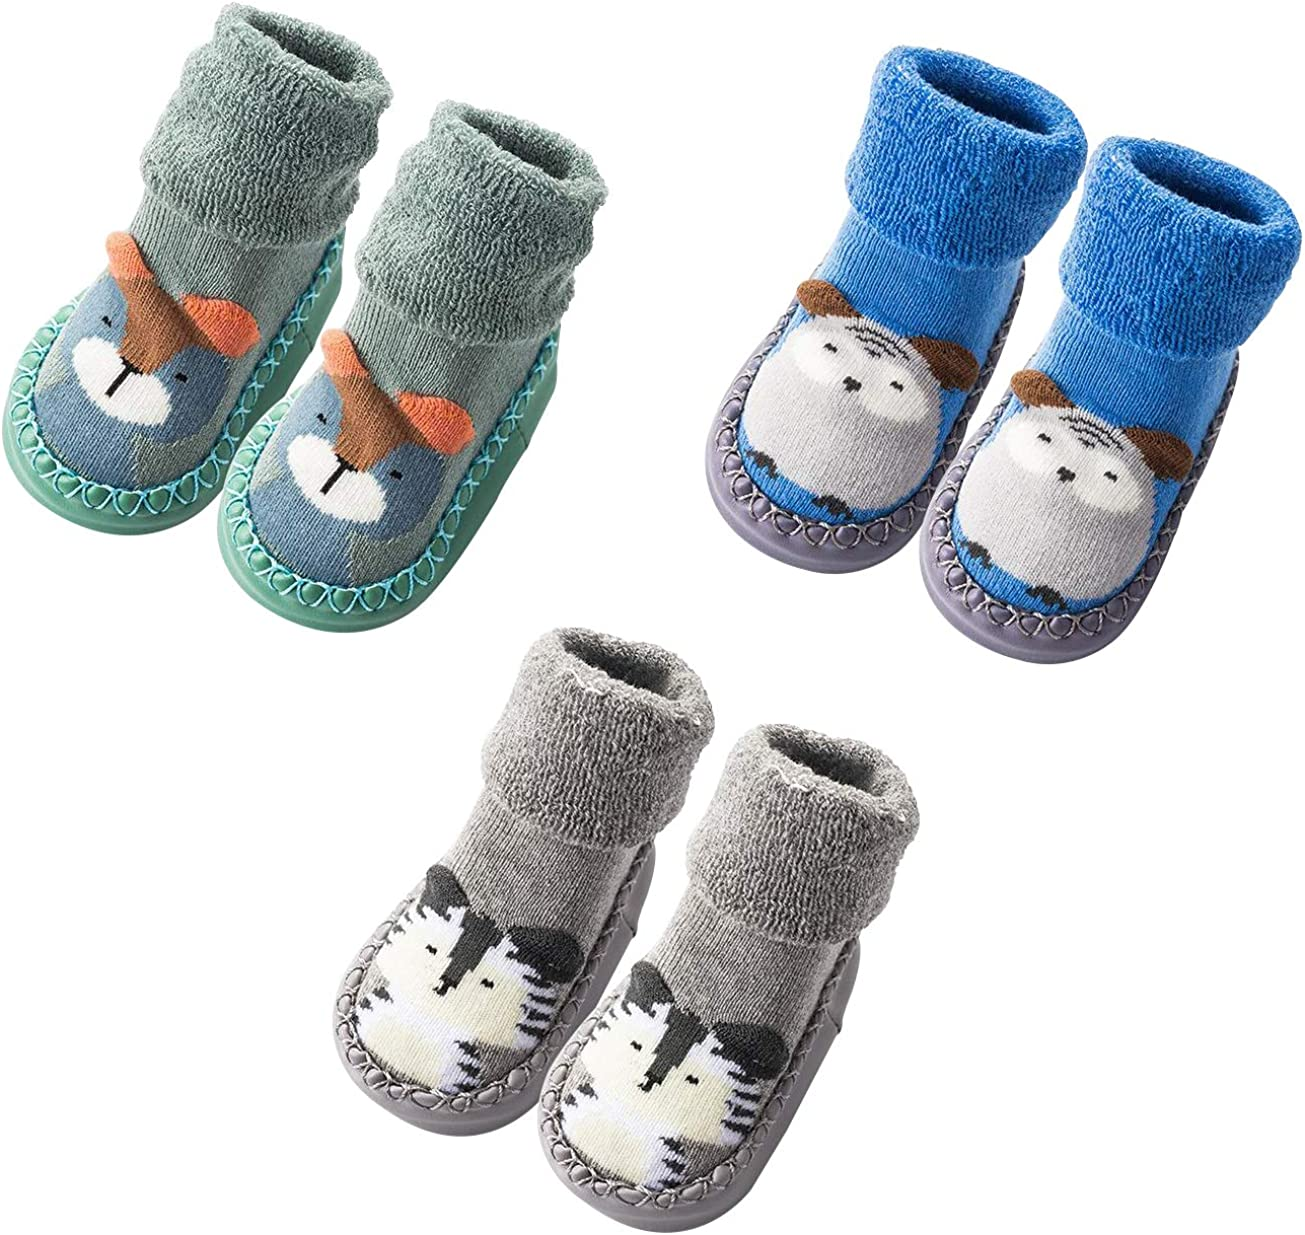 Infant Baby Boy Girls Toddlers Moccasins Non-Skid Indoor Slipper Shoes Socks Booties with Grips